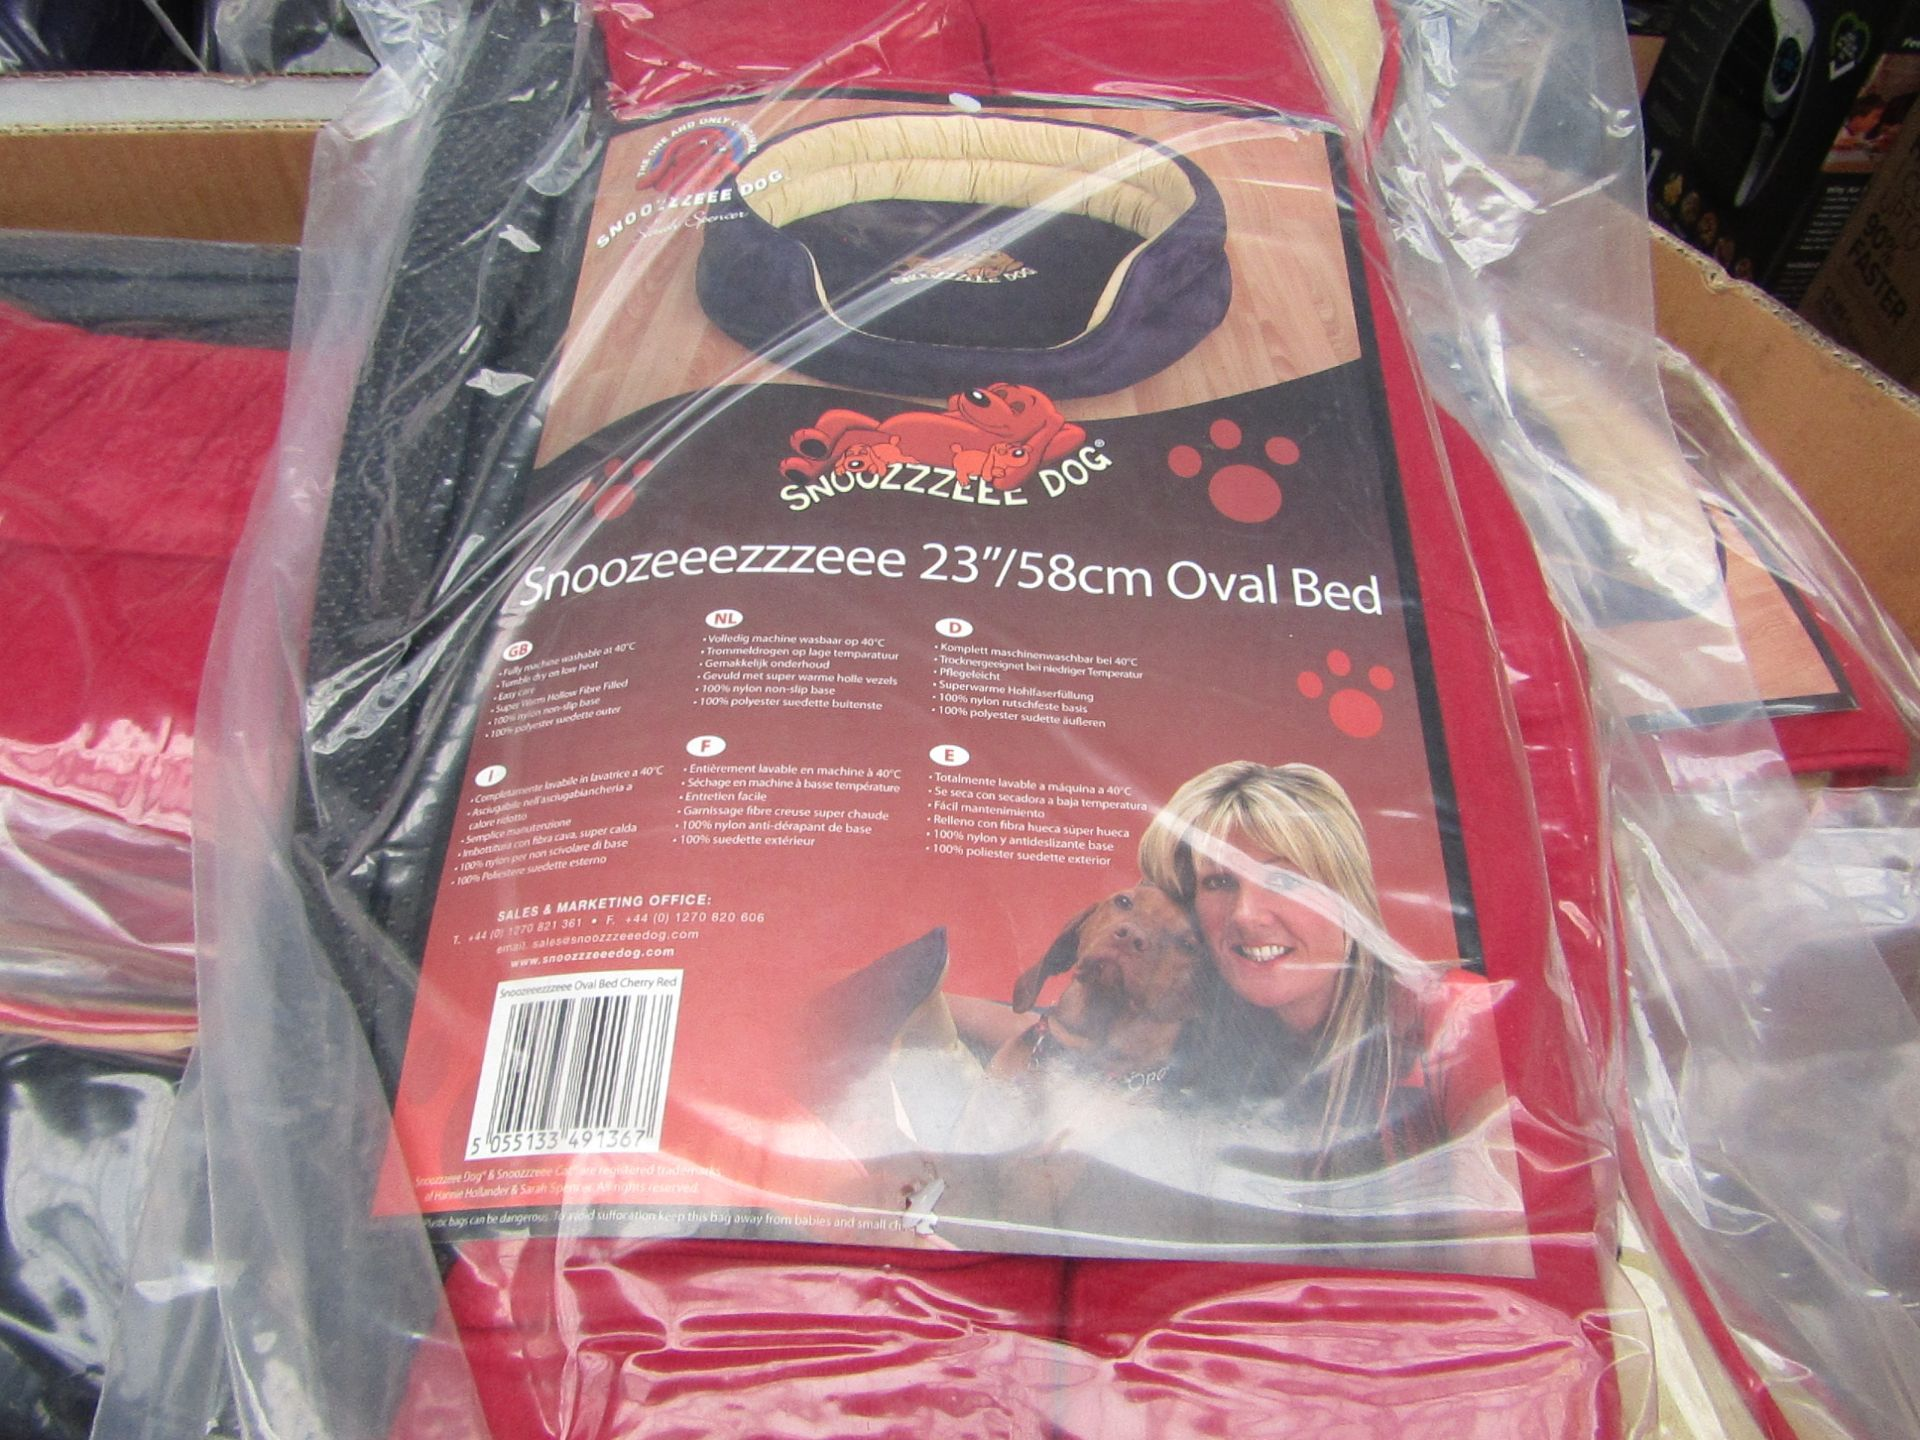 """5x Snoozzzeee Dog - Oval Cherry Red Dog Bed (23""""/58cm) - All New & Packaged."""